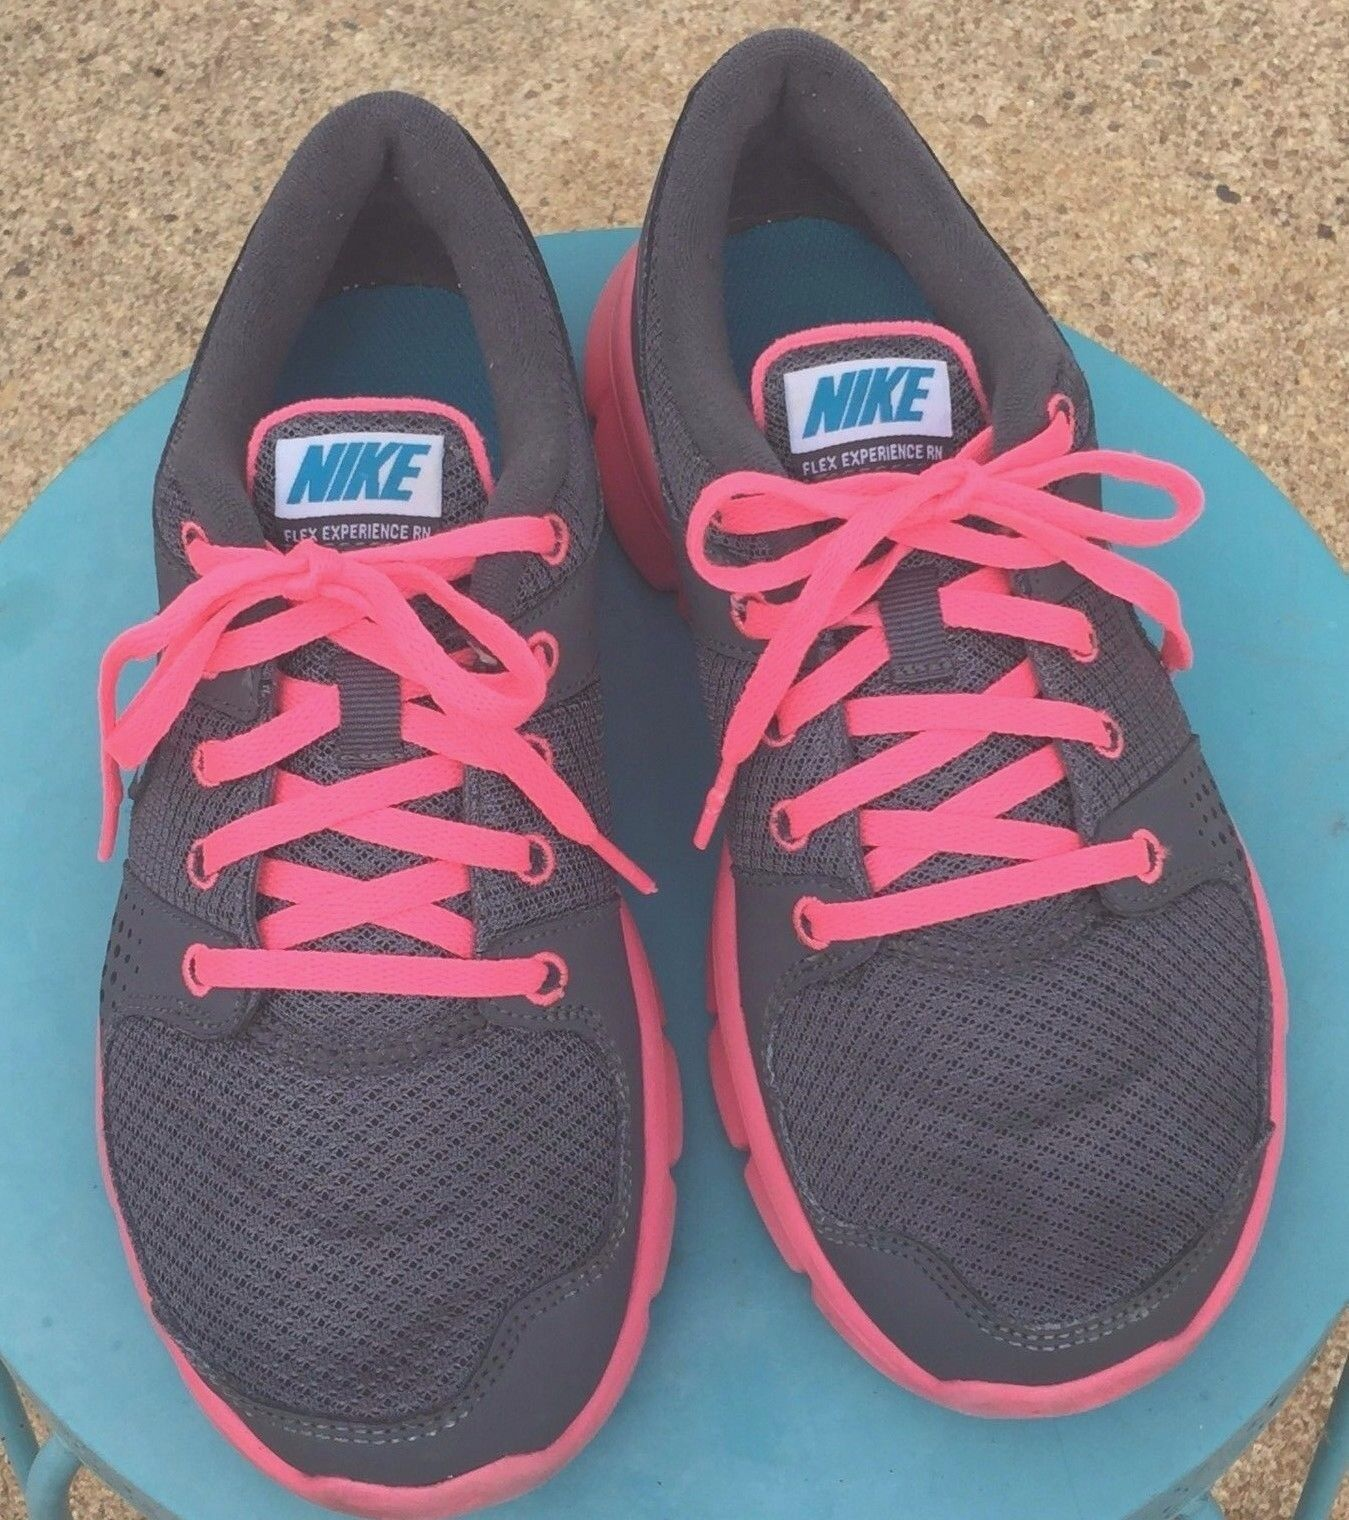 NIKE Flex Experience RN Womens Sneakers Running Yoga  Mesh Gray Pink  6.5 Special limited time